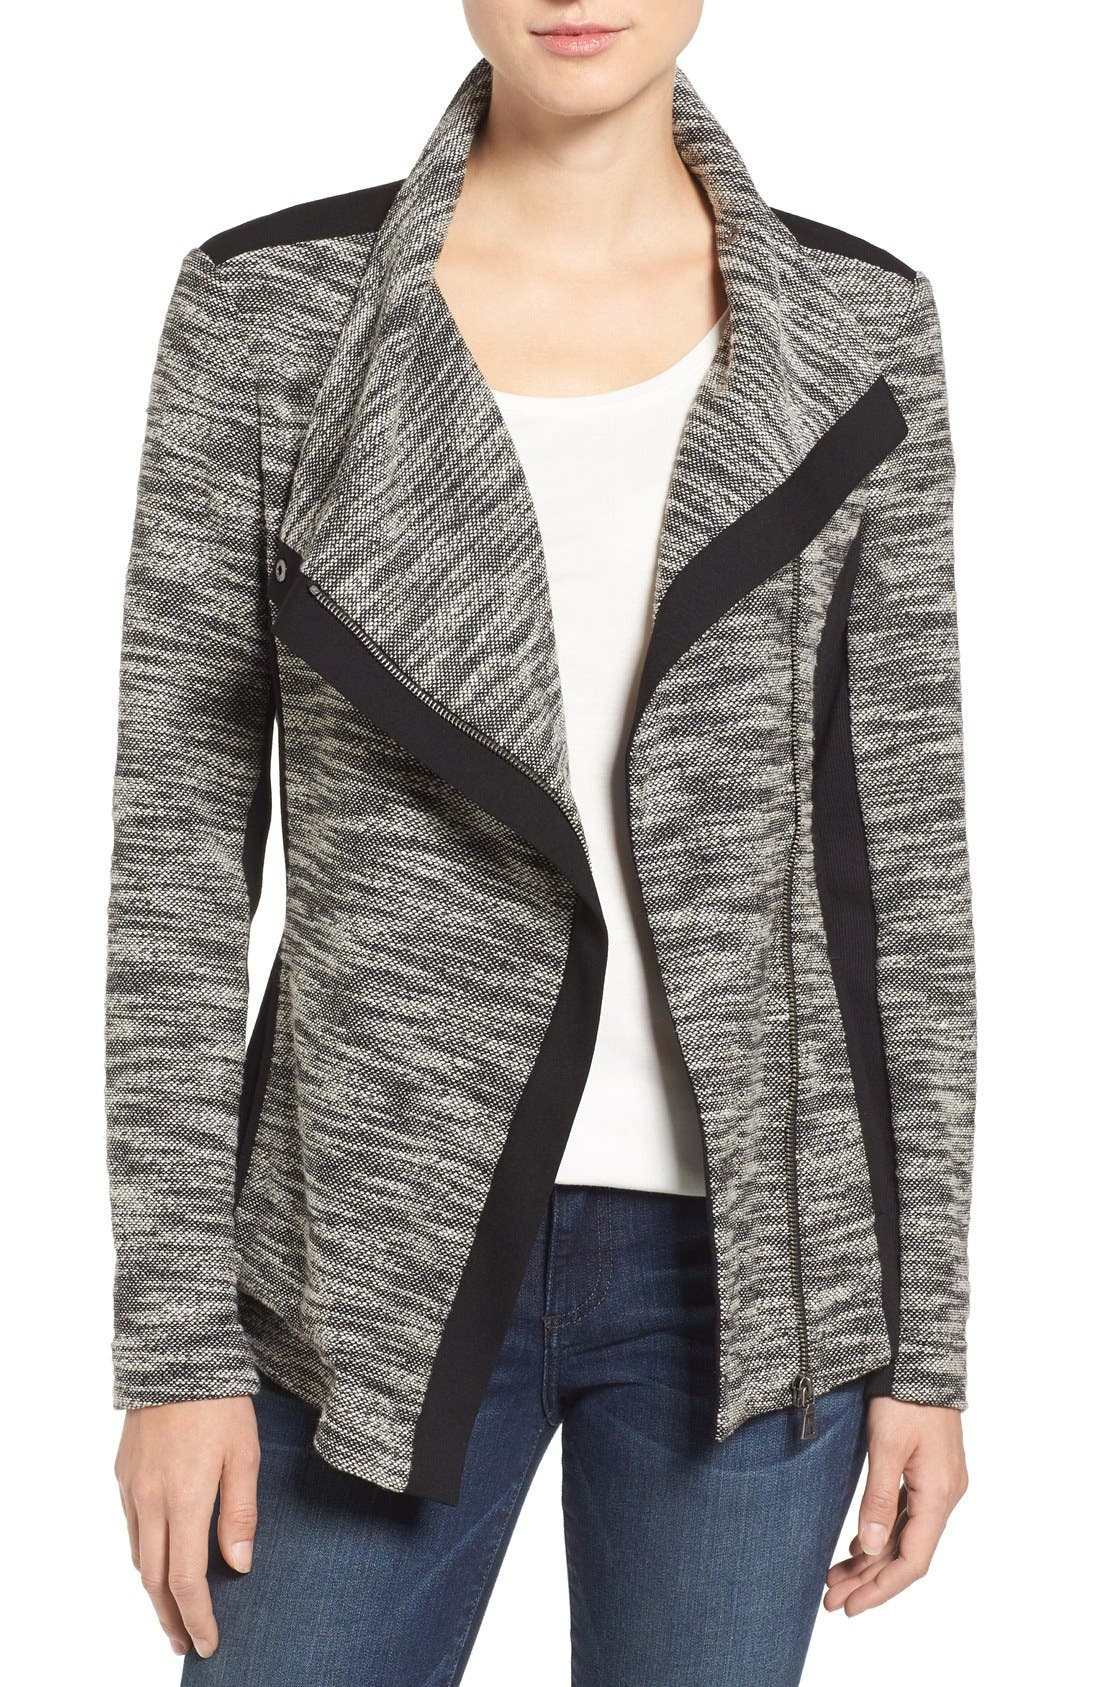 Alternate Image 1 Selected - Two by Vince Camuto Asymmetrical Mixed Media Jacket (Regular & Petite)